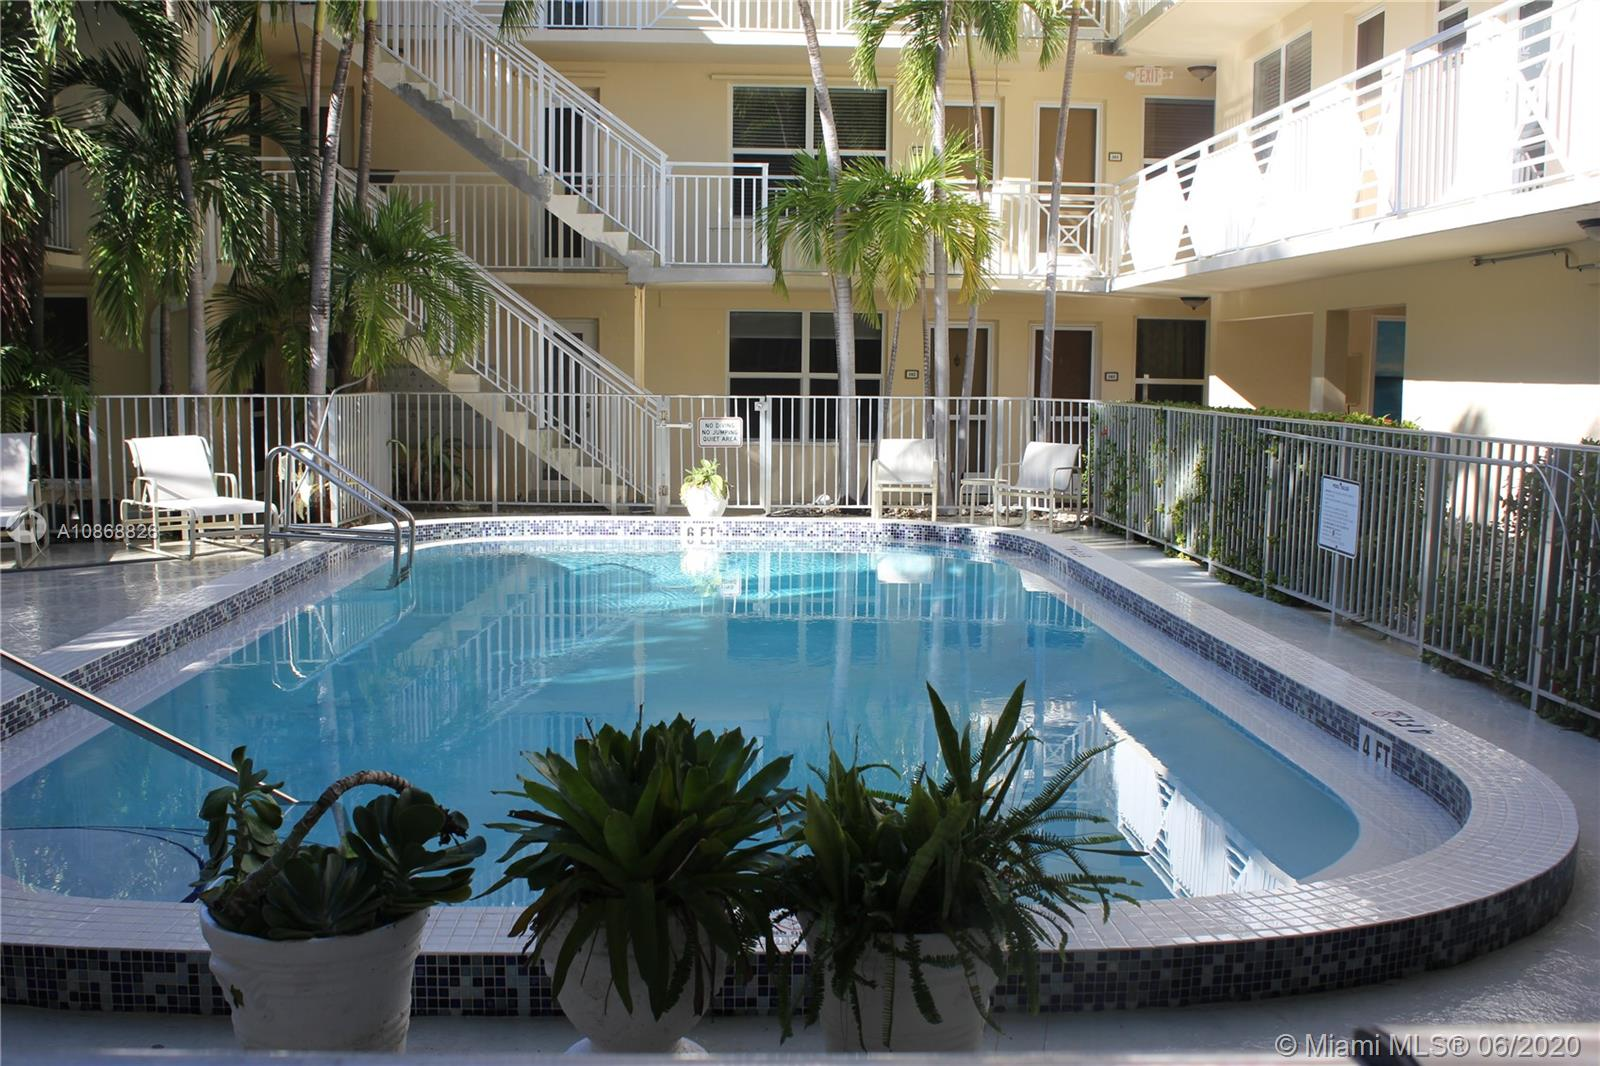 Beautiful 1B 1B apartment in Key Biscayne, walking distance from grocery store, pharmacy and restaurants. Also a block away from the beach access. Excellent location